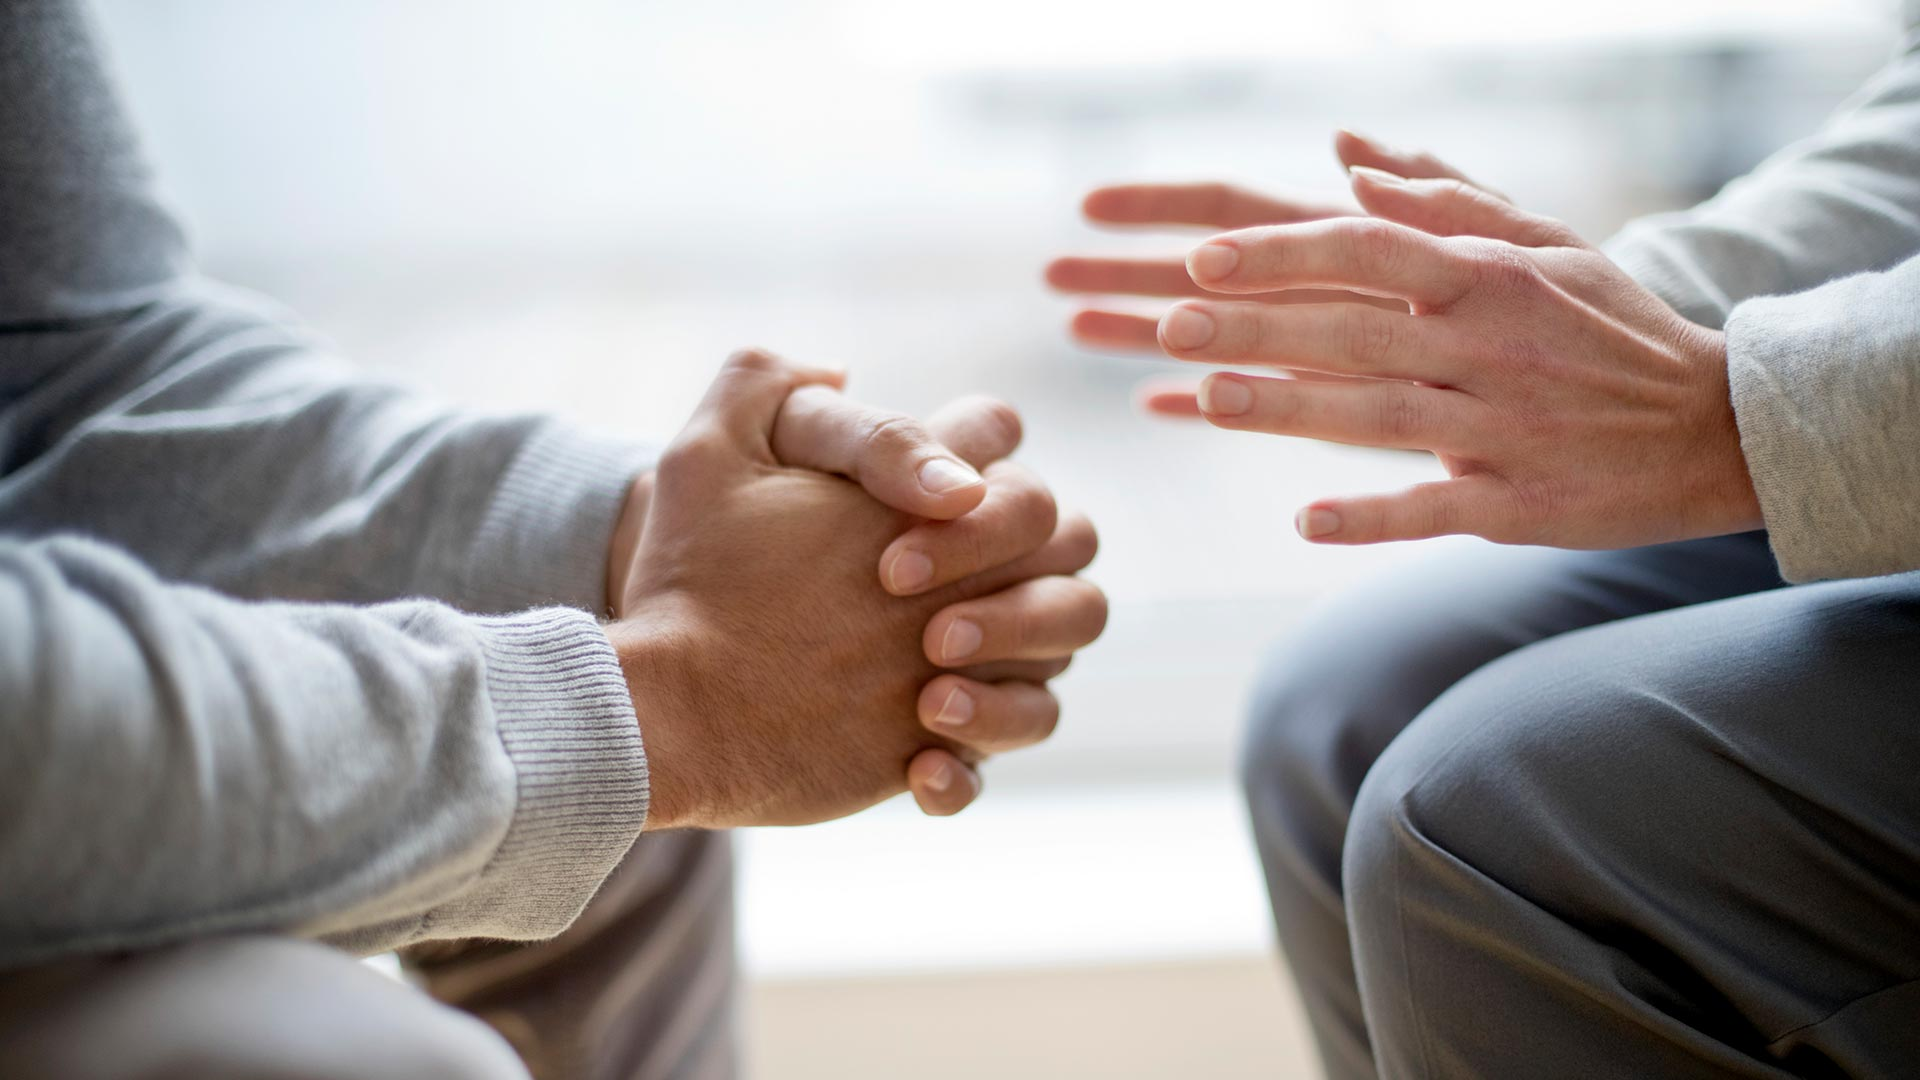 close up of hands during a conversation